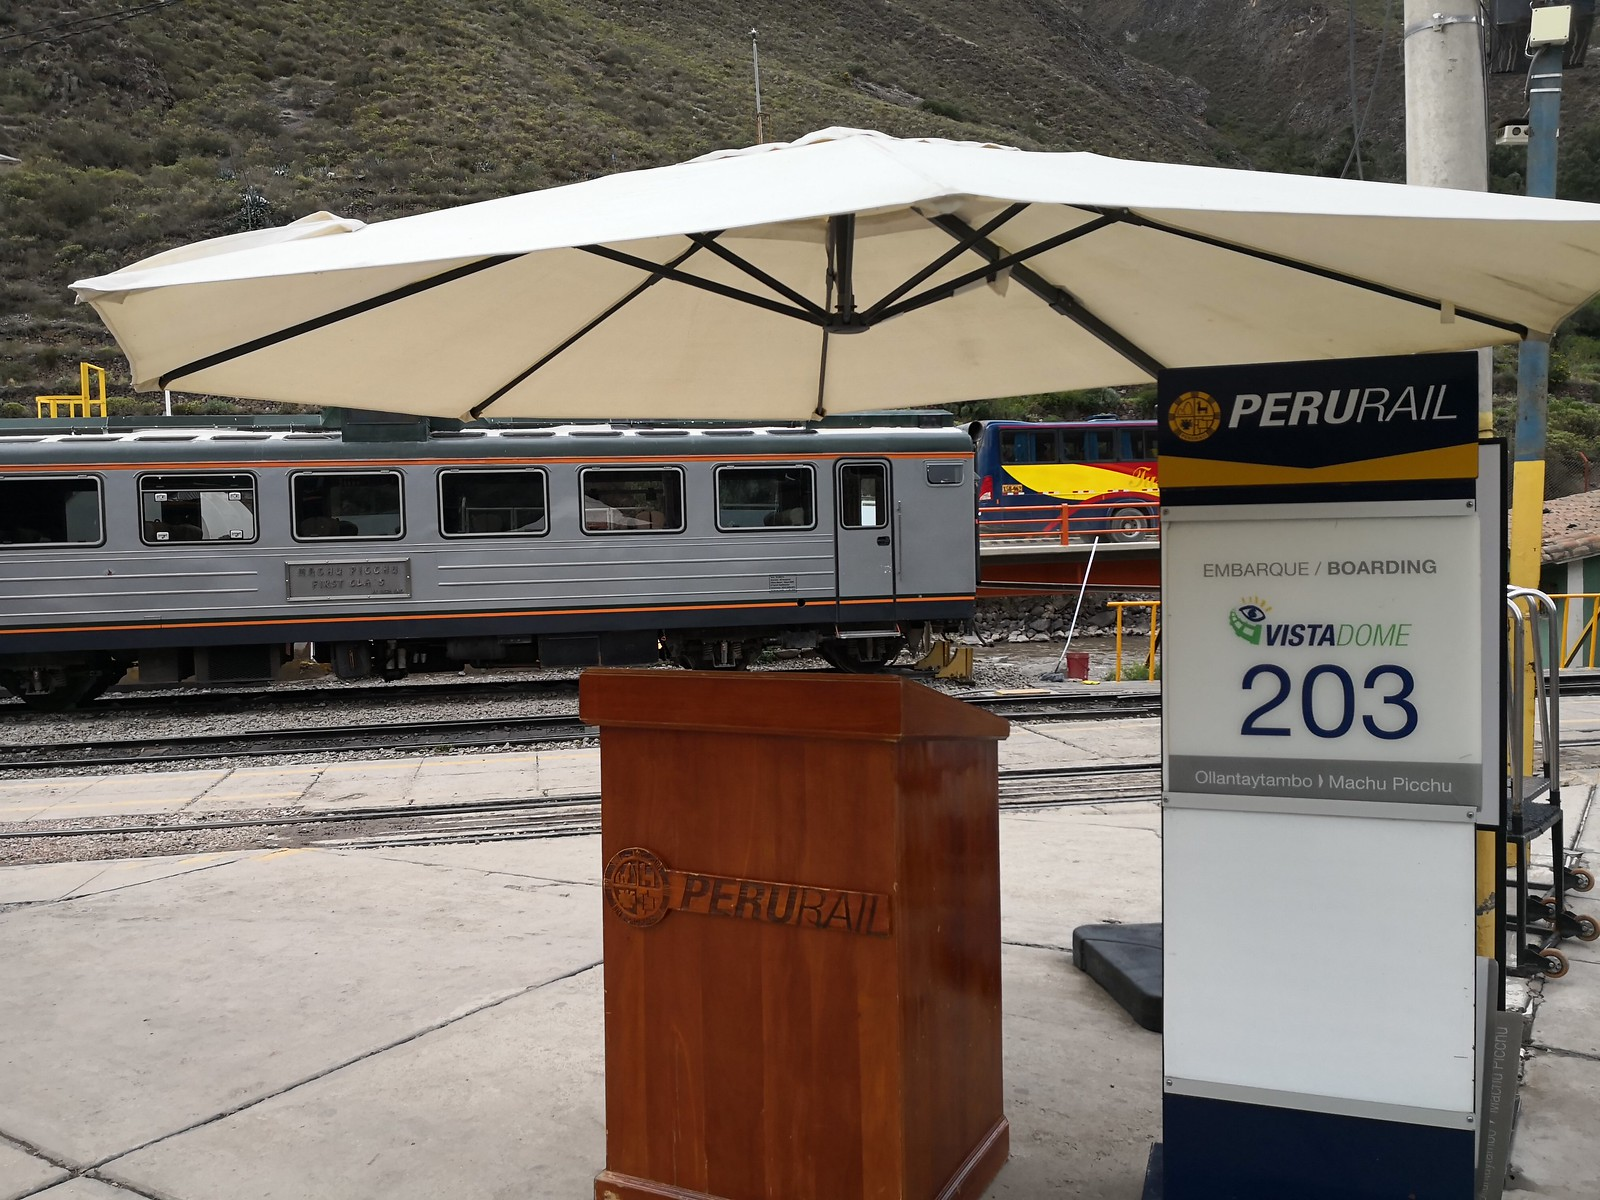 Peru Rail Boarding Area